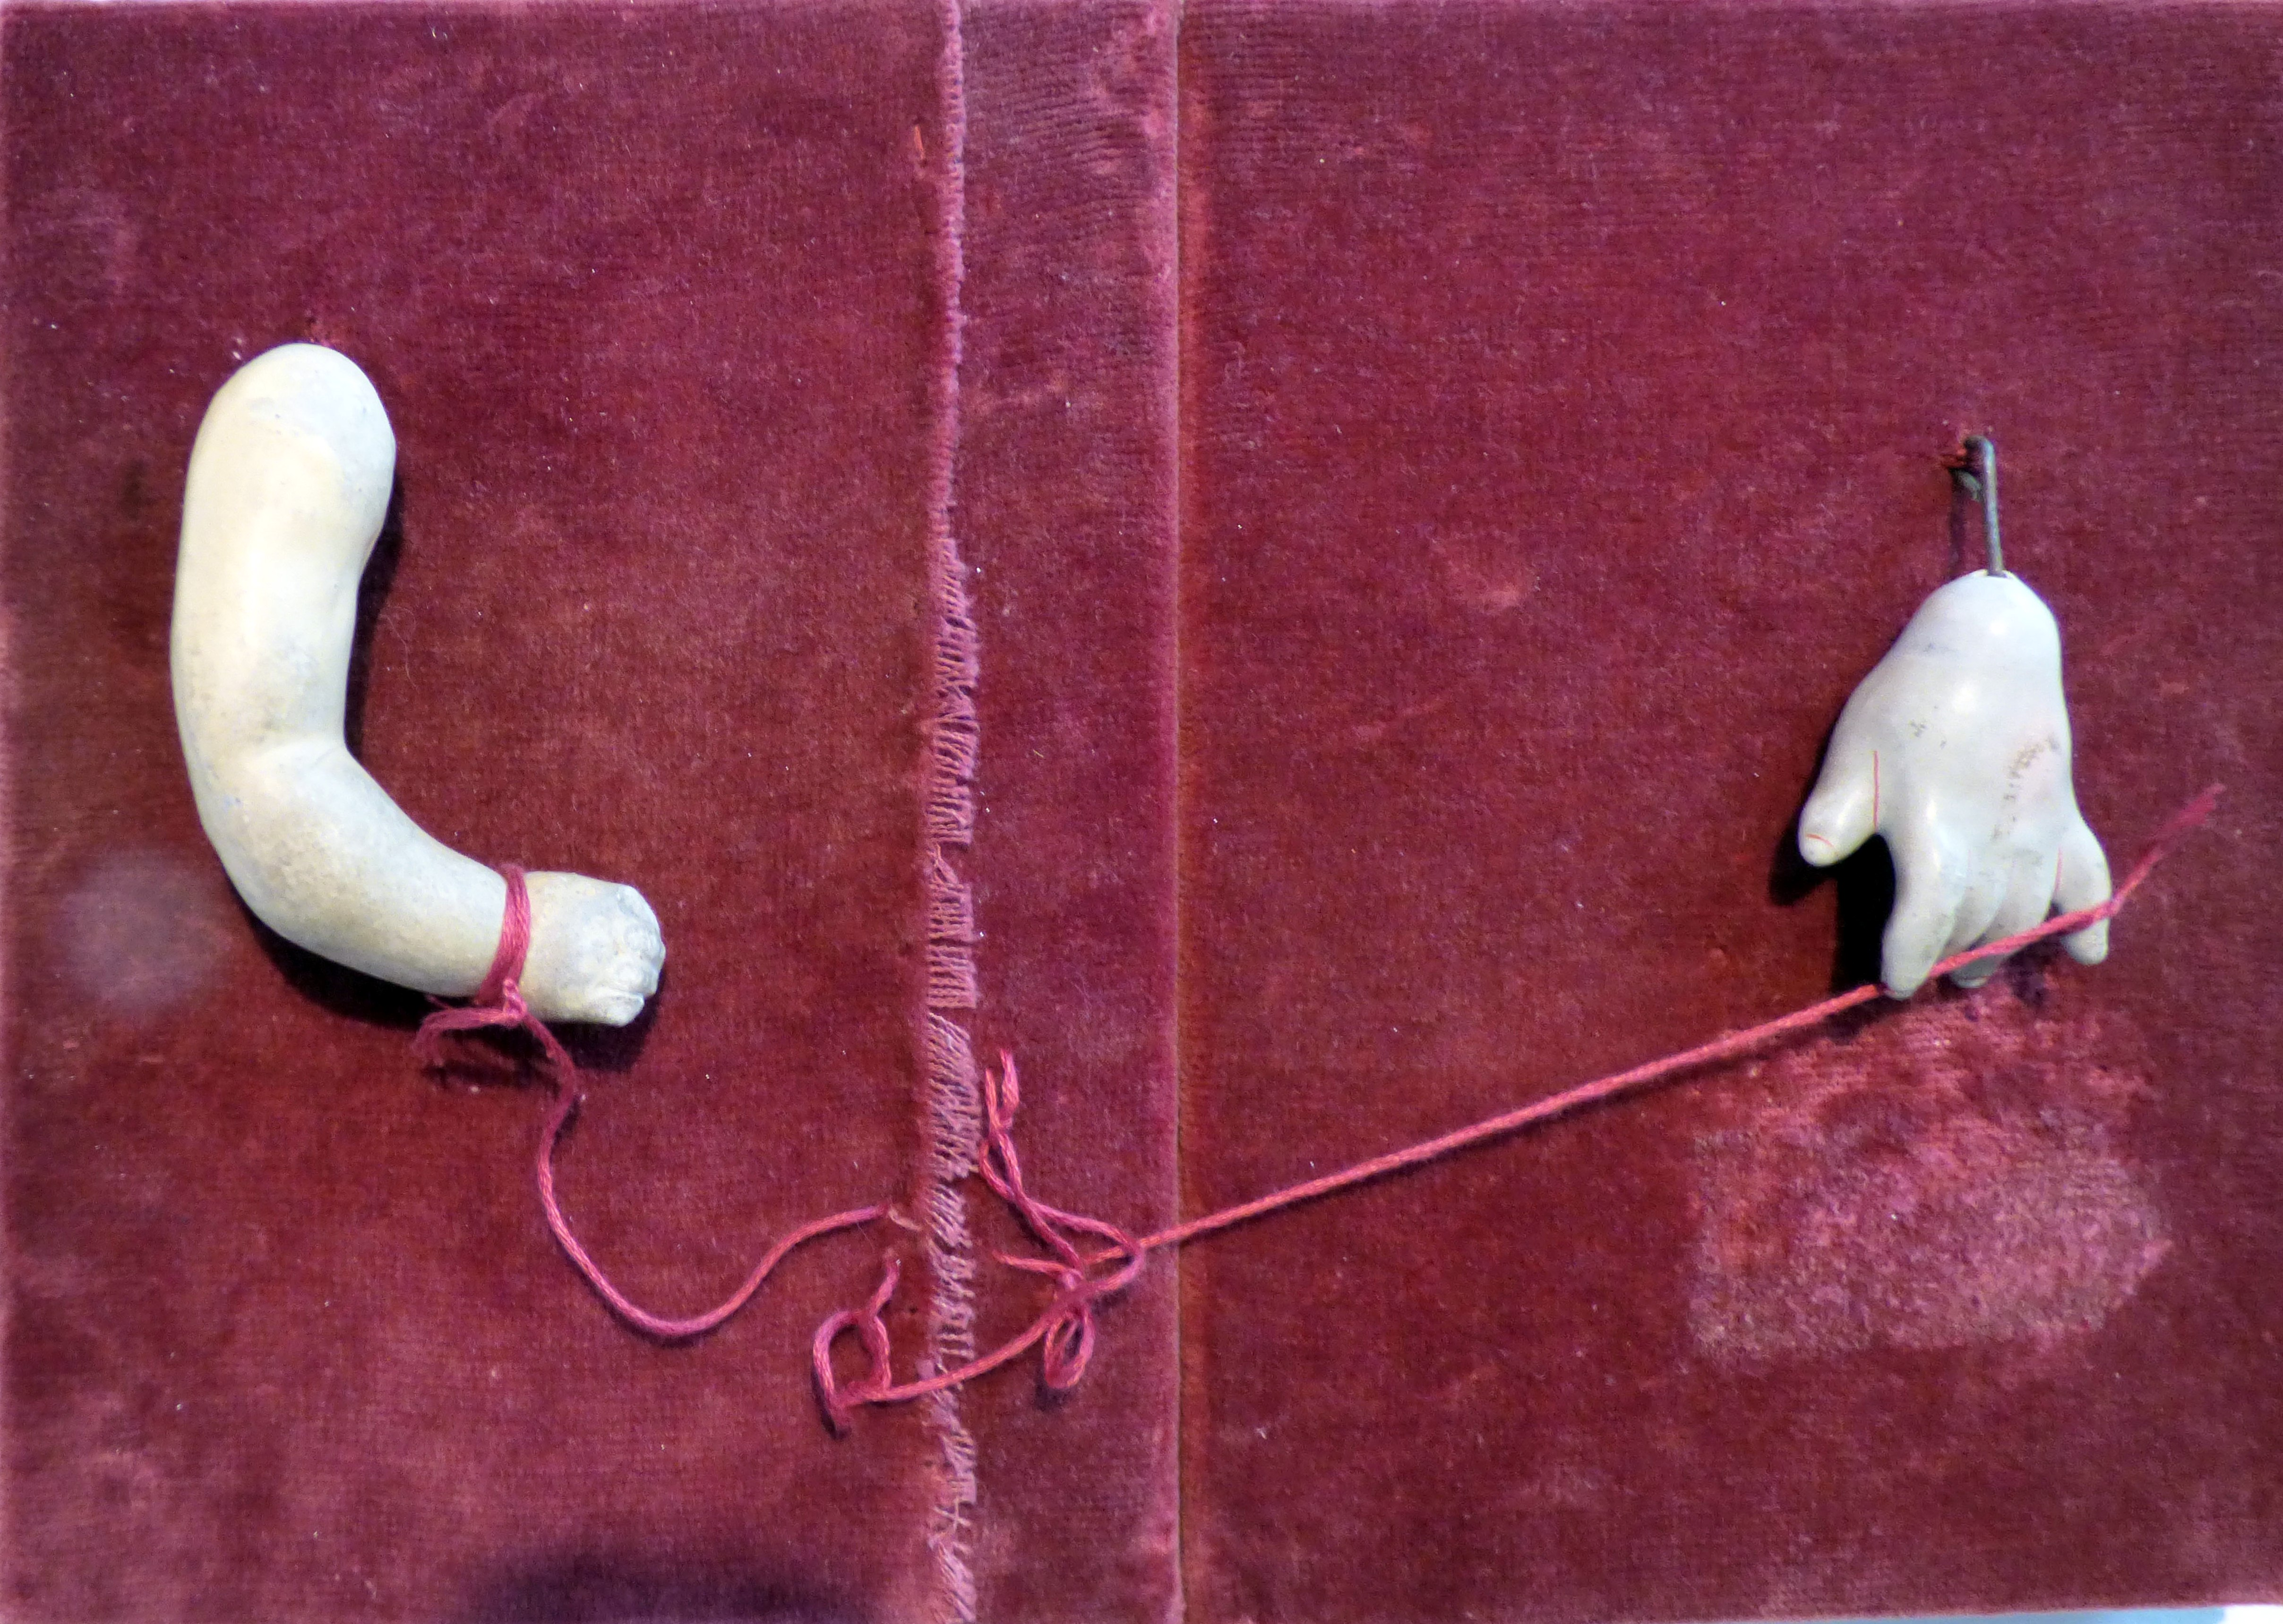 THE RED STRING OF FATE by Paula Fenwick Lucas, assemblage. From The Heart exhibition, St Helens, Feb 2020